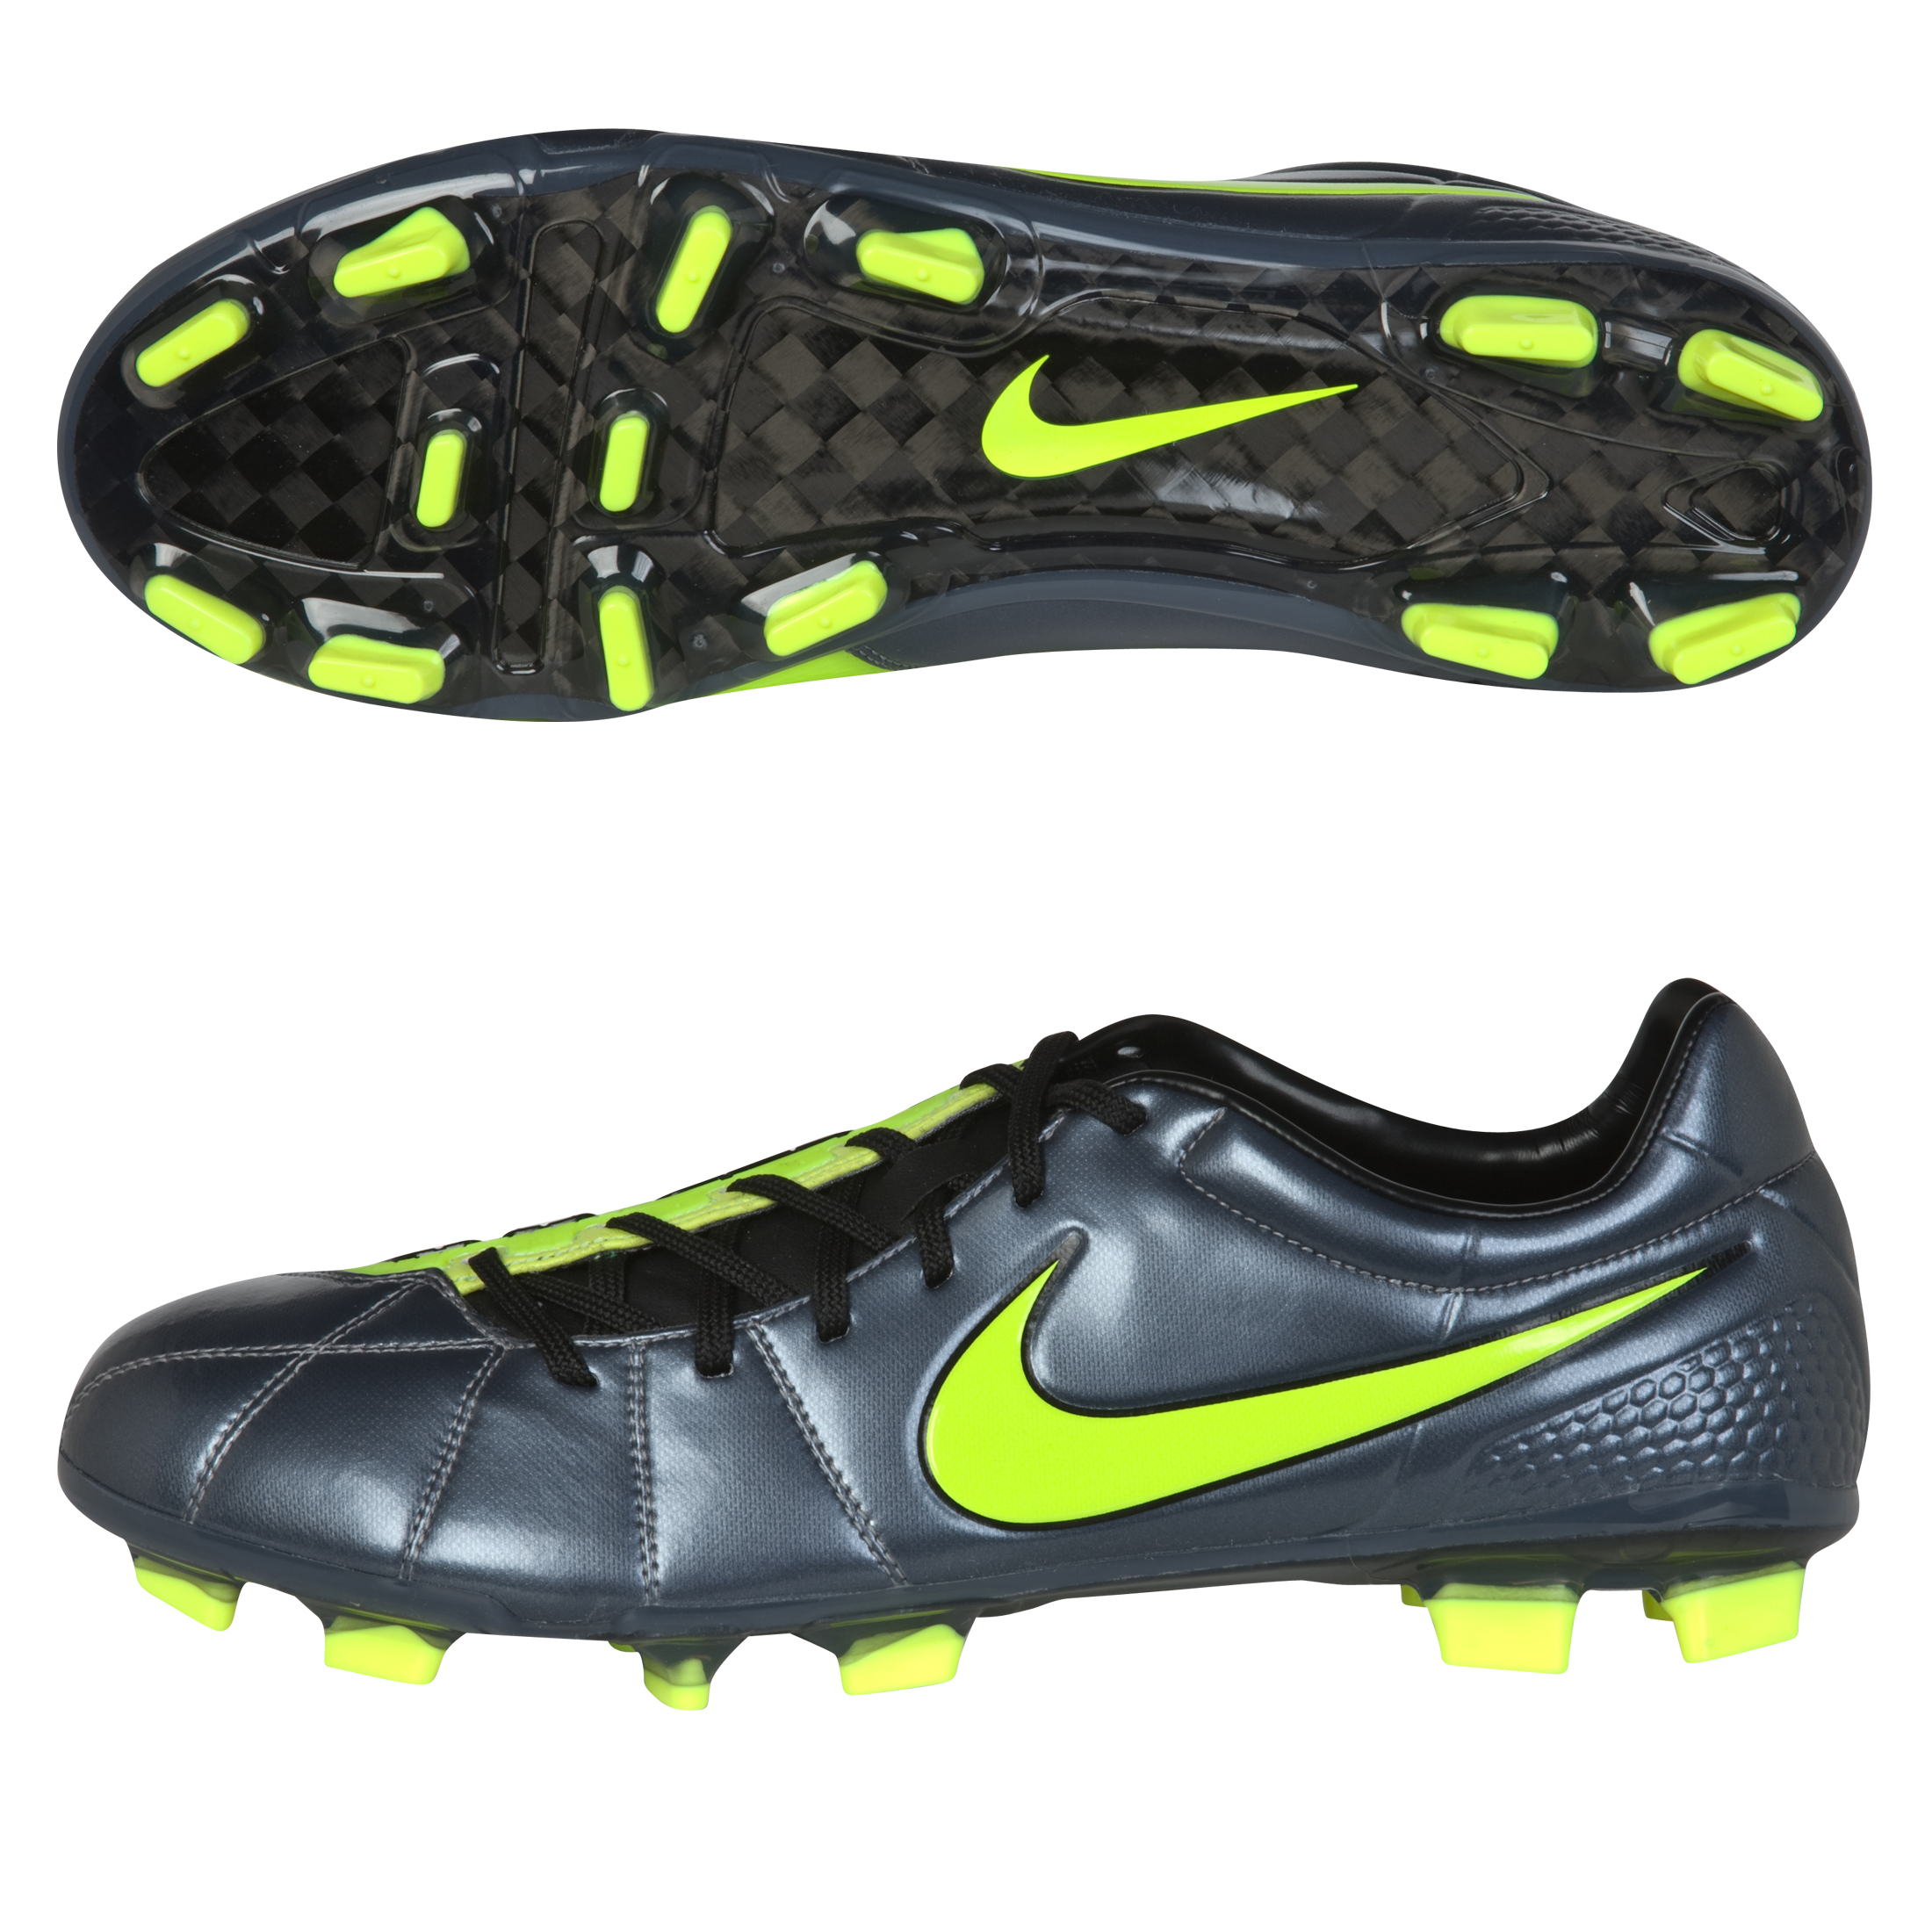 Nike T90 Laser III Elite Firm Ground Metallic Blue Dusk/ Volt/Black